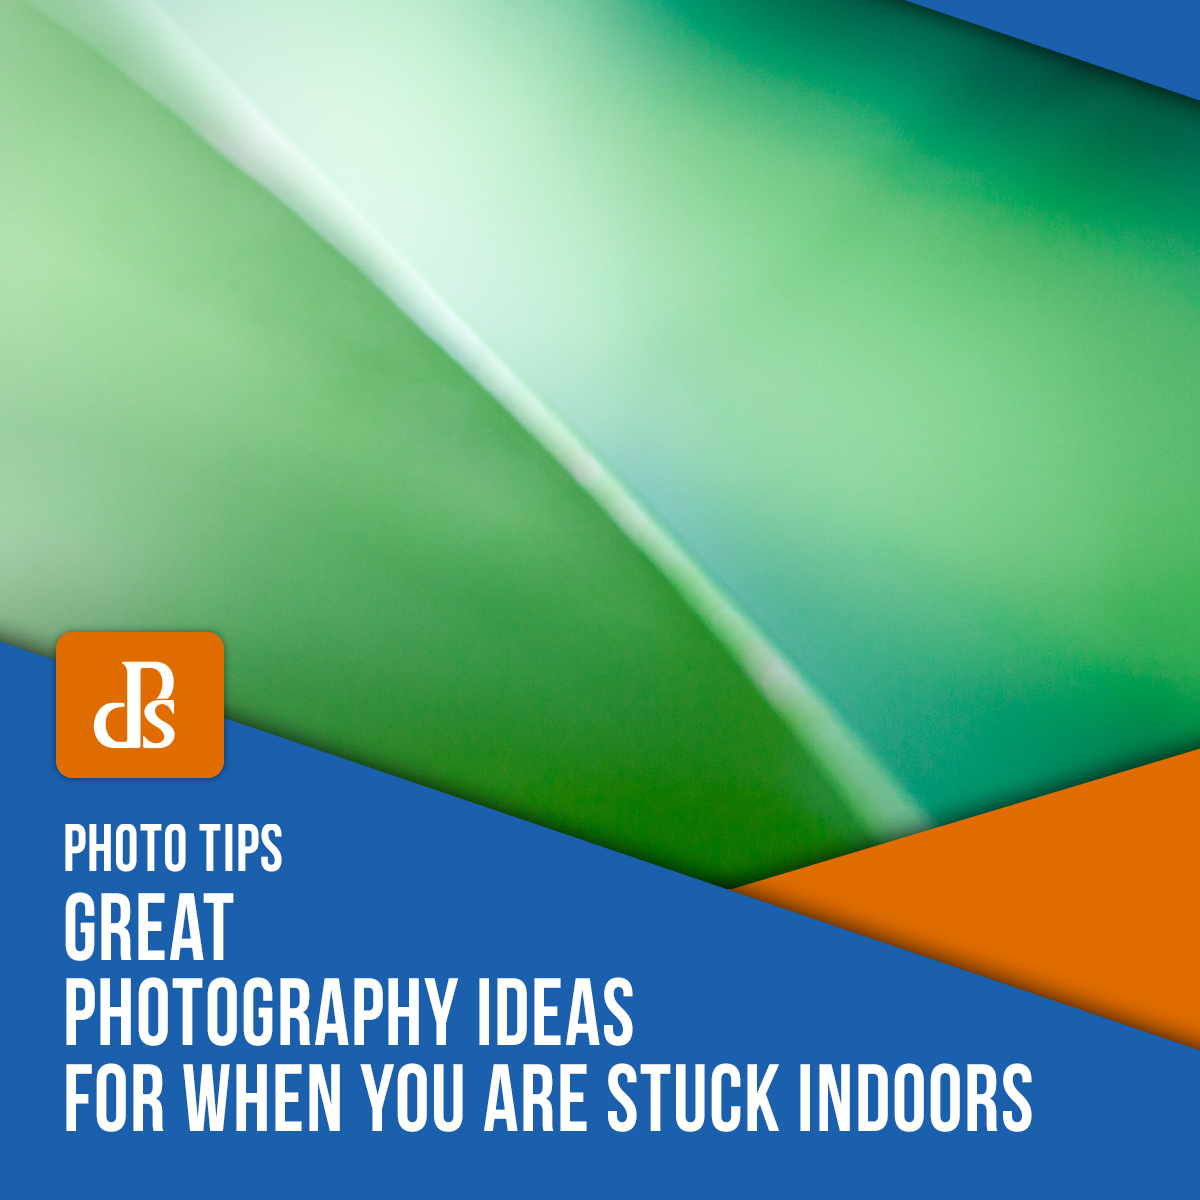 Great Photography Ideas for When You Are Stuck Indoors featured image